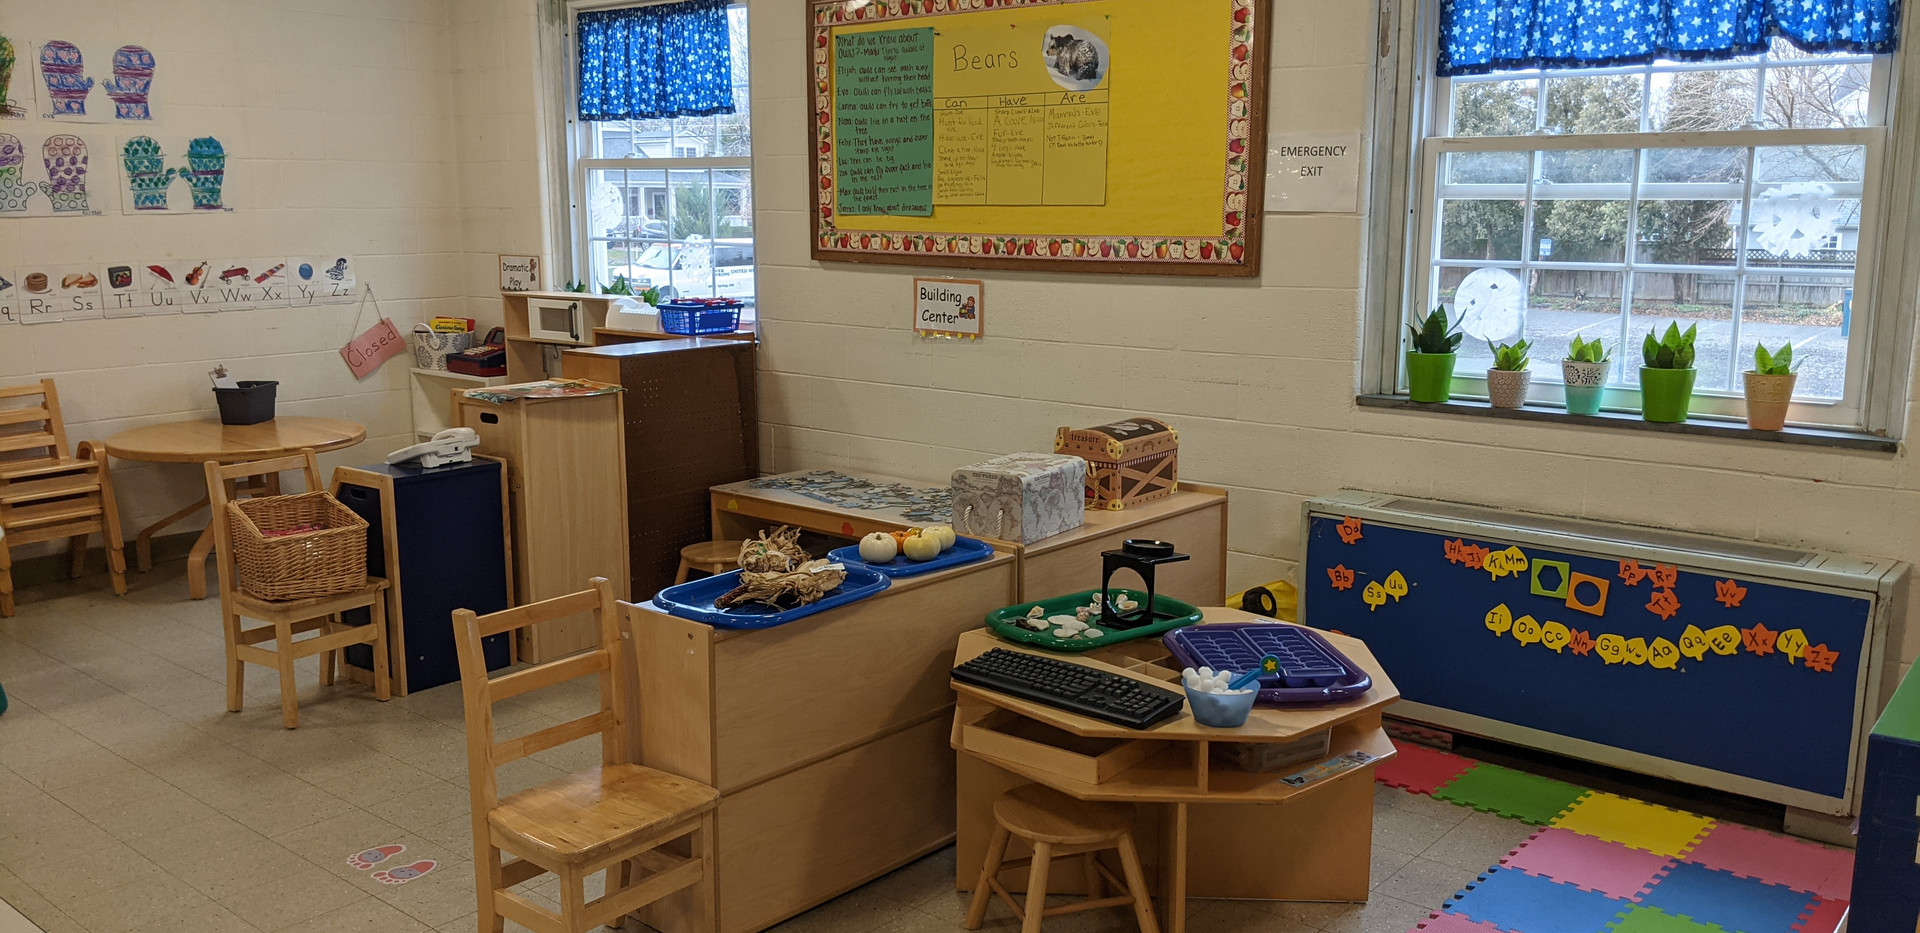 Pre-K Science Center and Building Center Pods